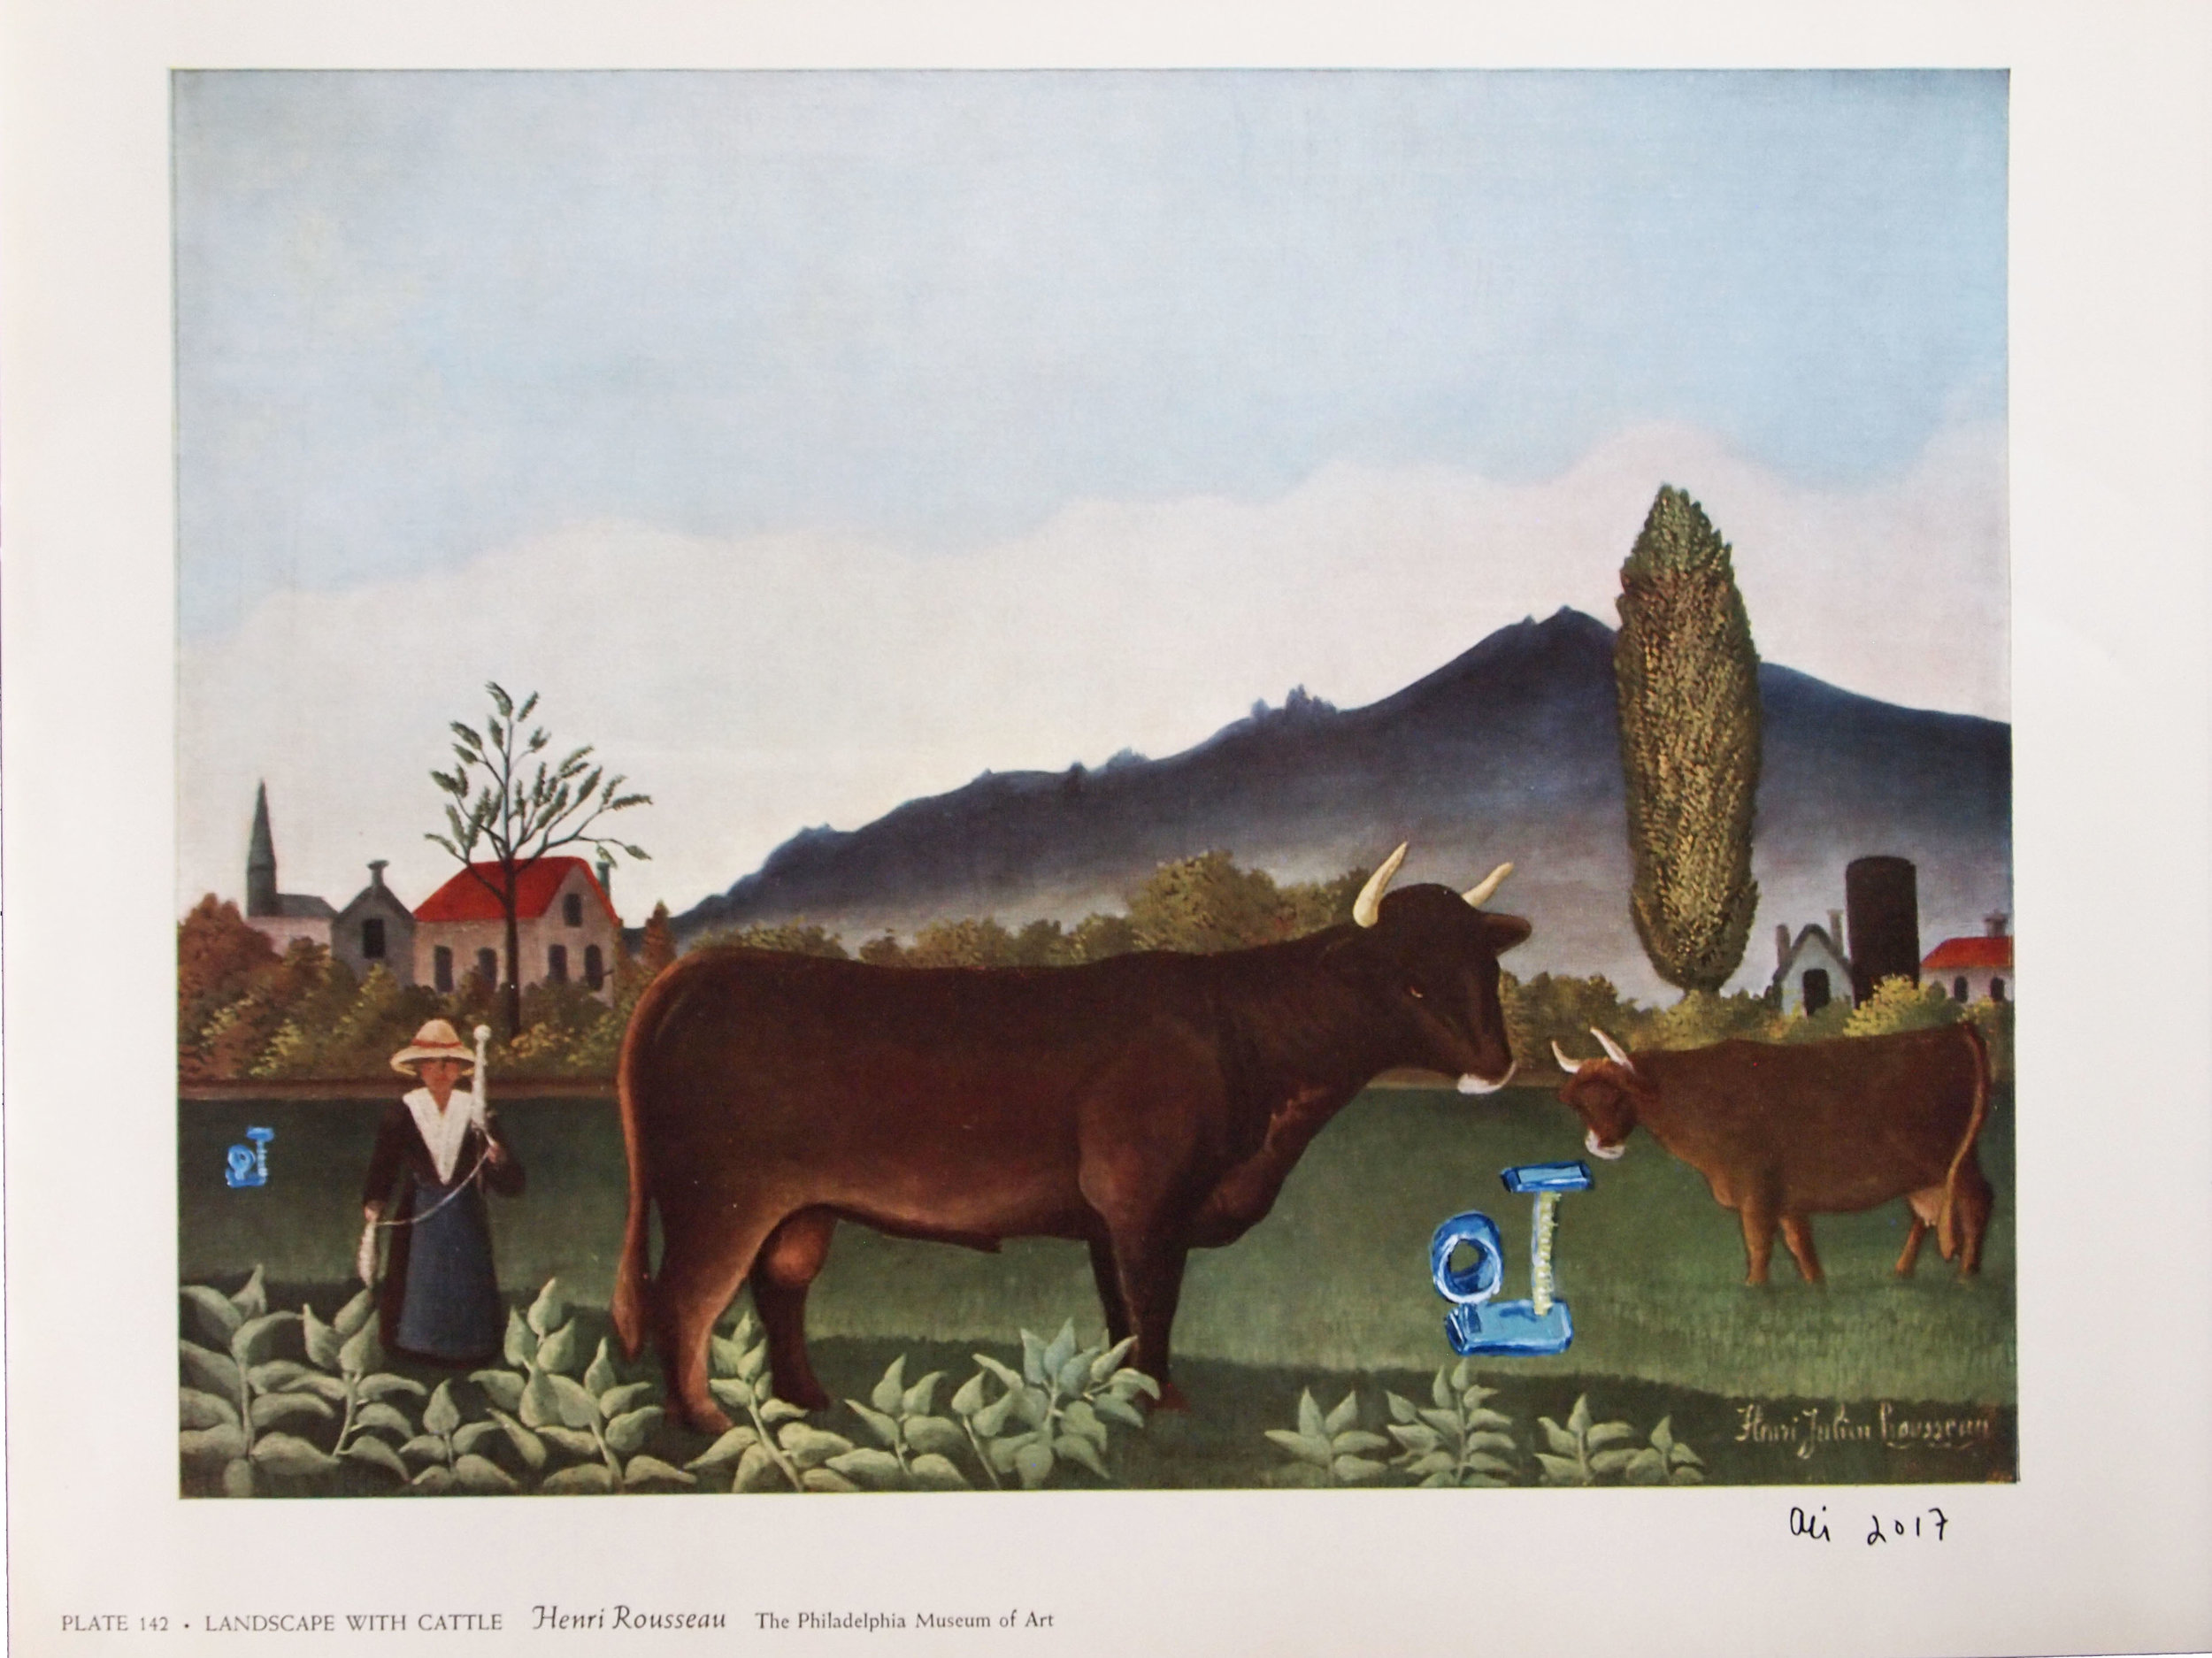 Landscape with Cattle and Cat Tree